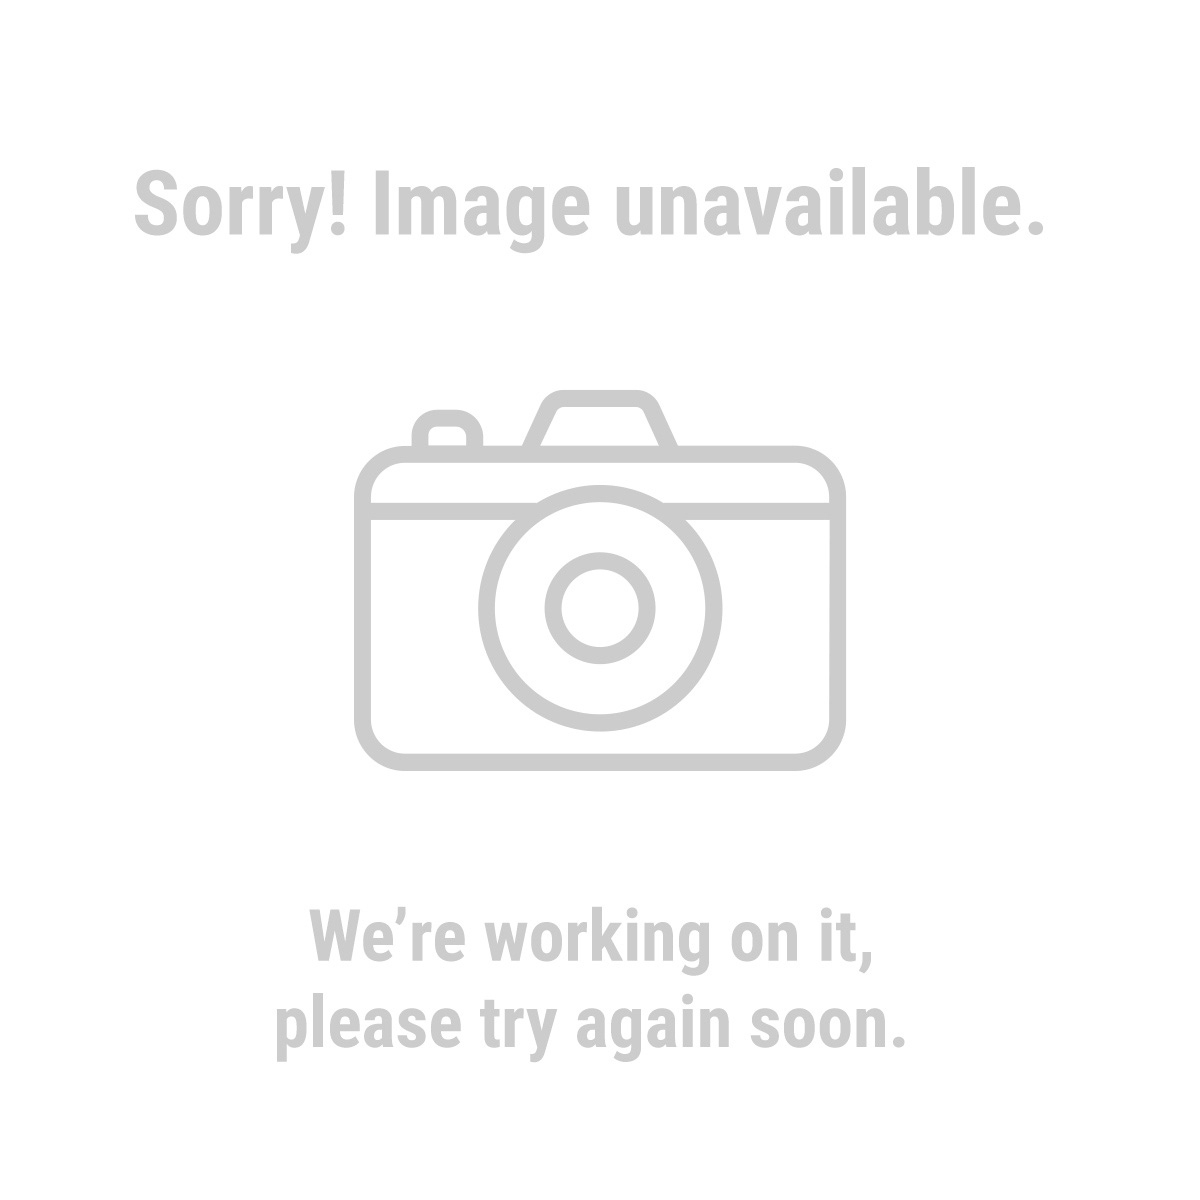 HFT 99960 100 ft. x 12 Gauge Triple Tap Extension Cord with Indicator Light